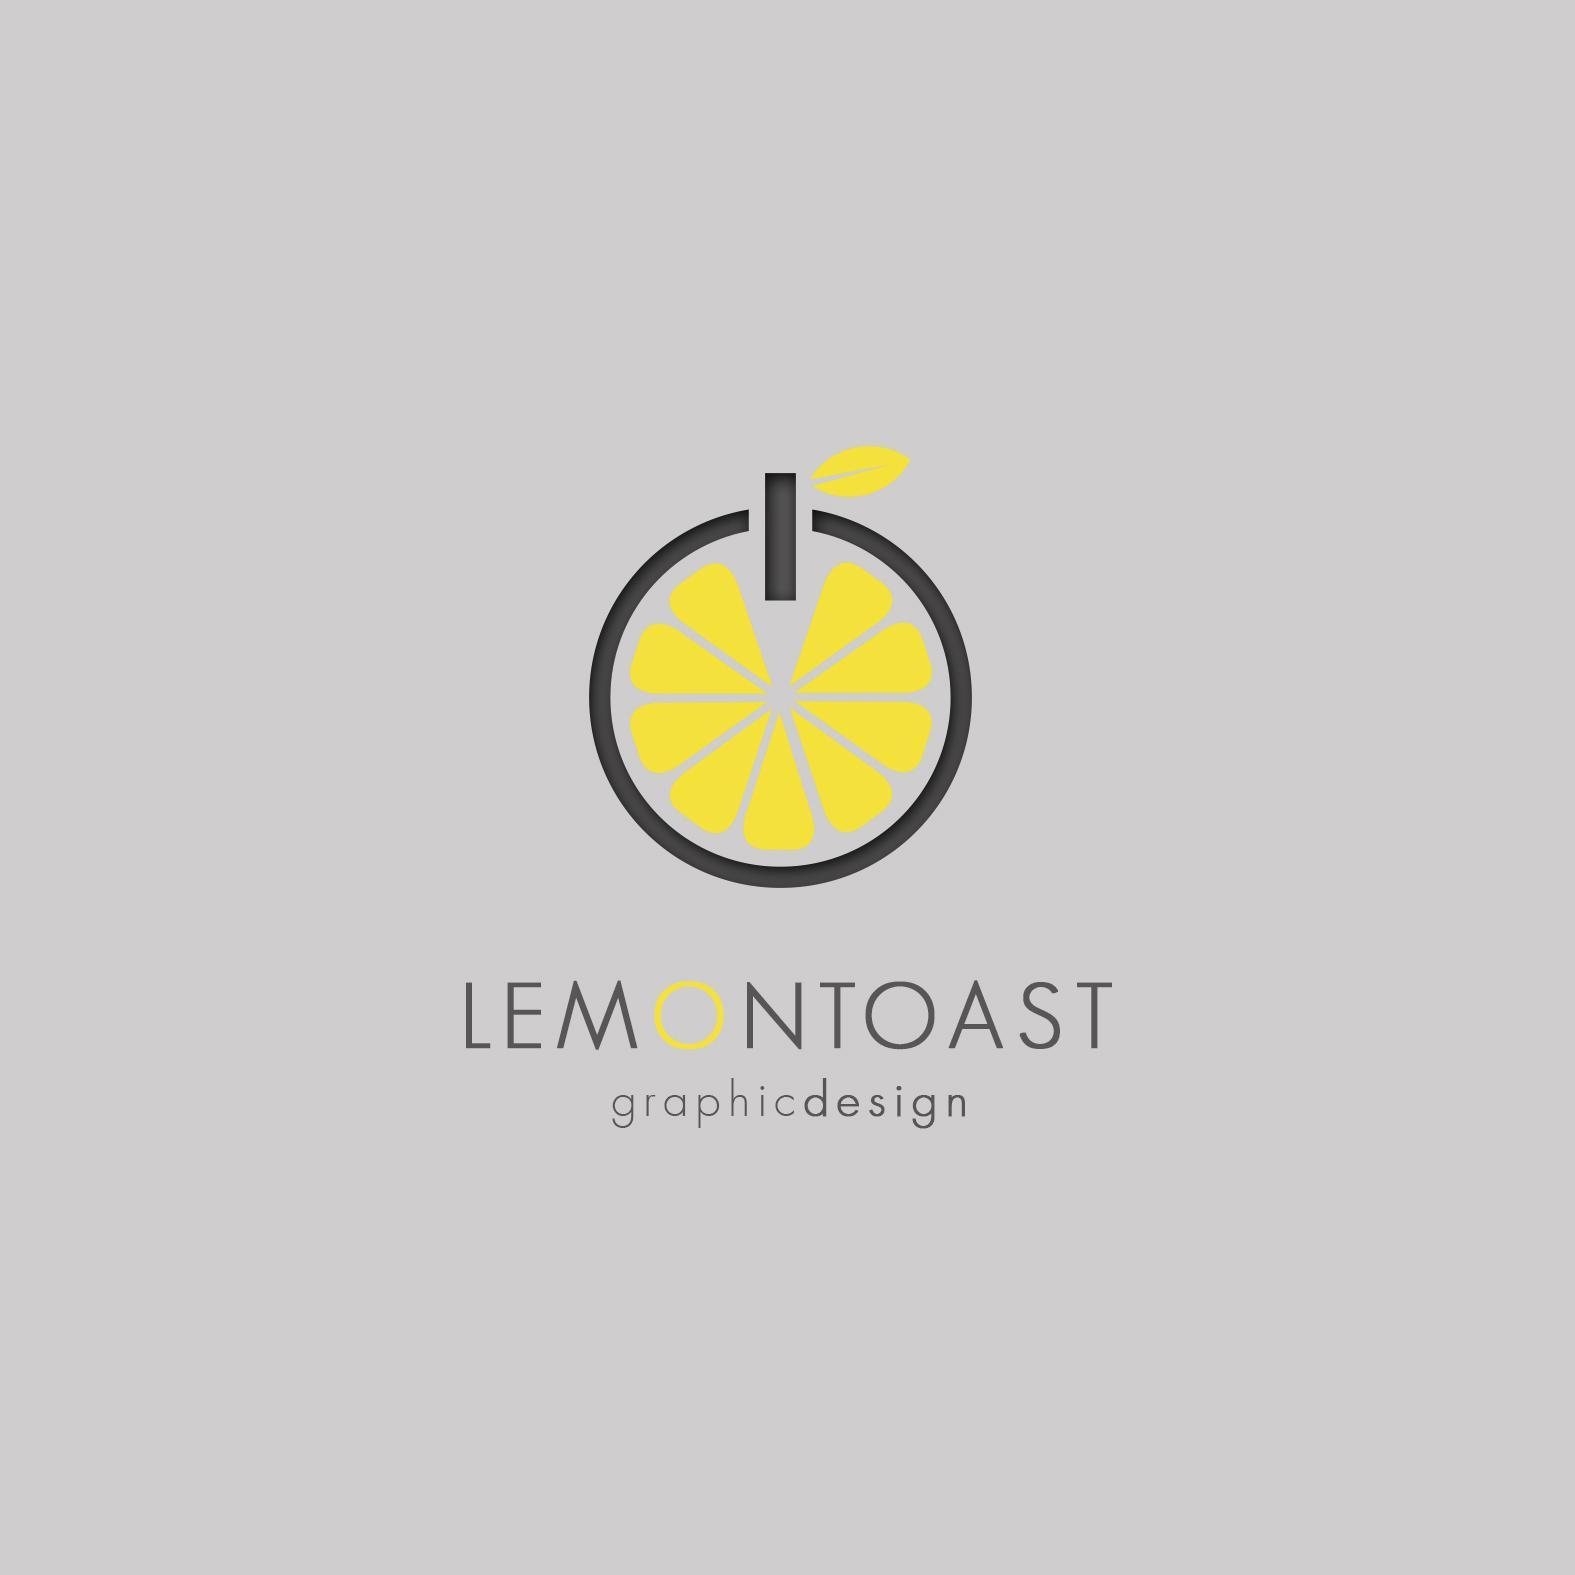 lemontoast